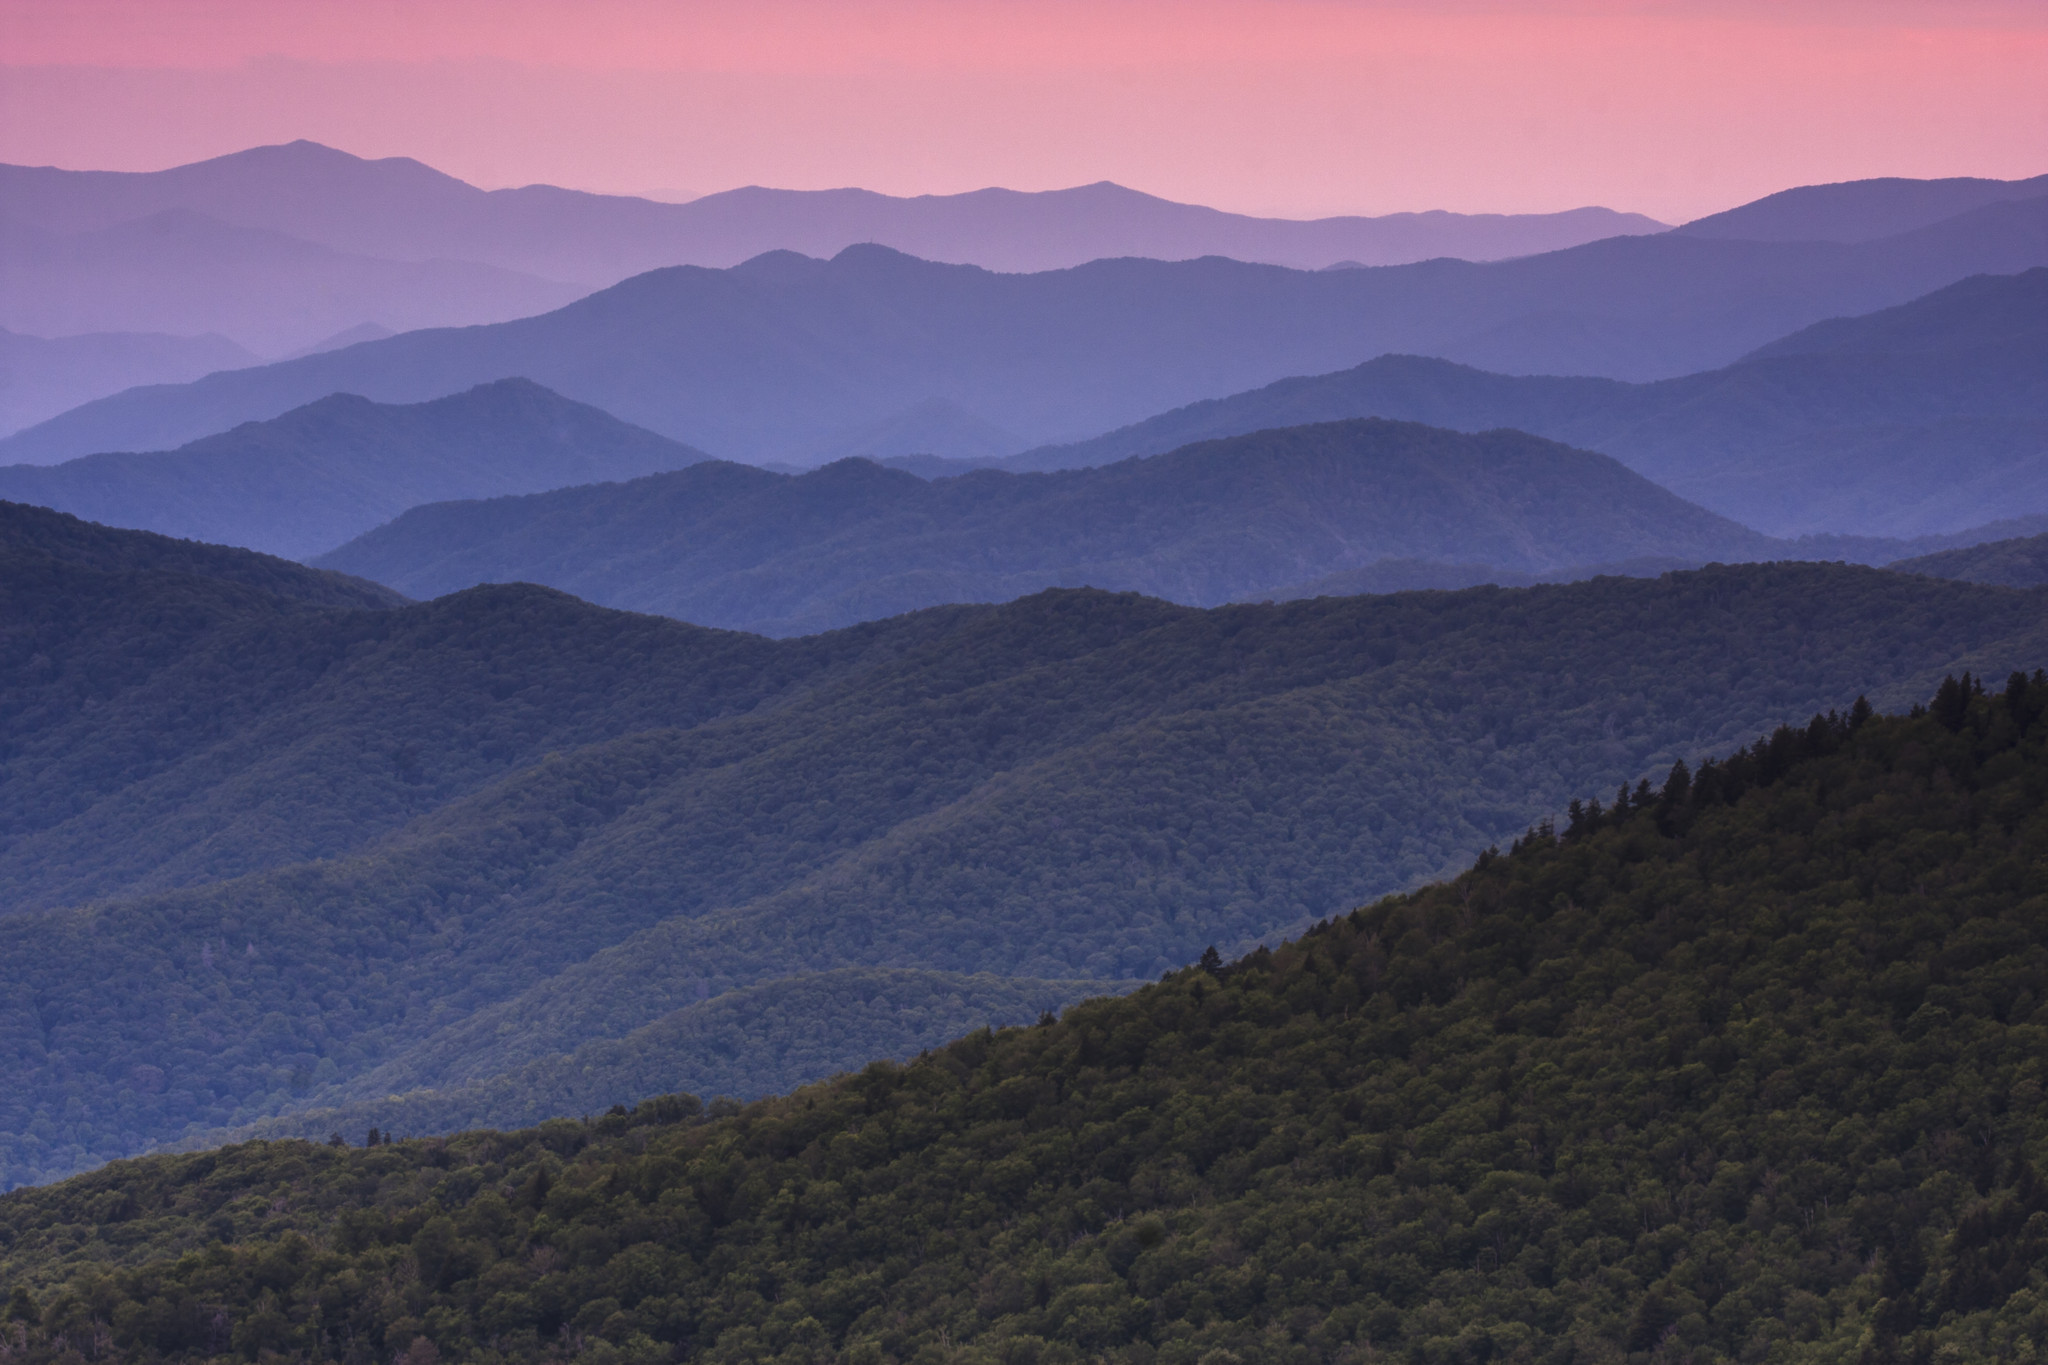 11 Travel Tips From The Great Smoky Mountains To A Slew